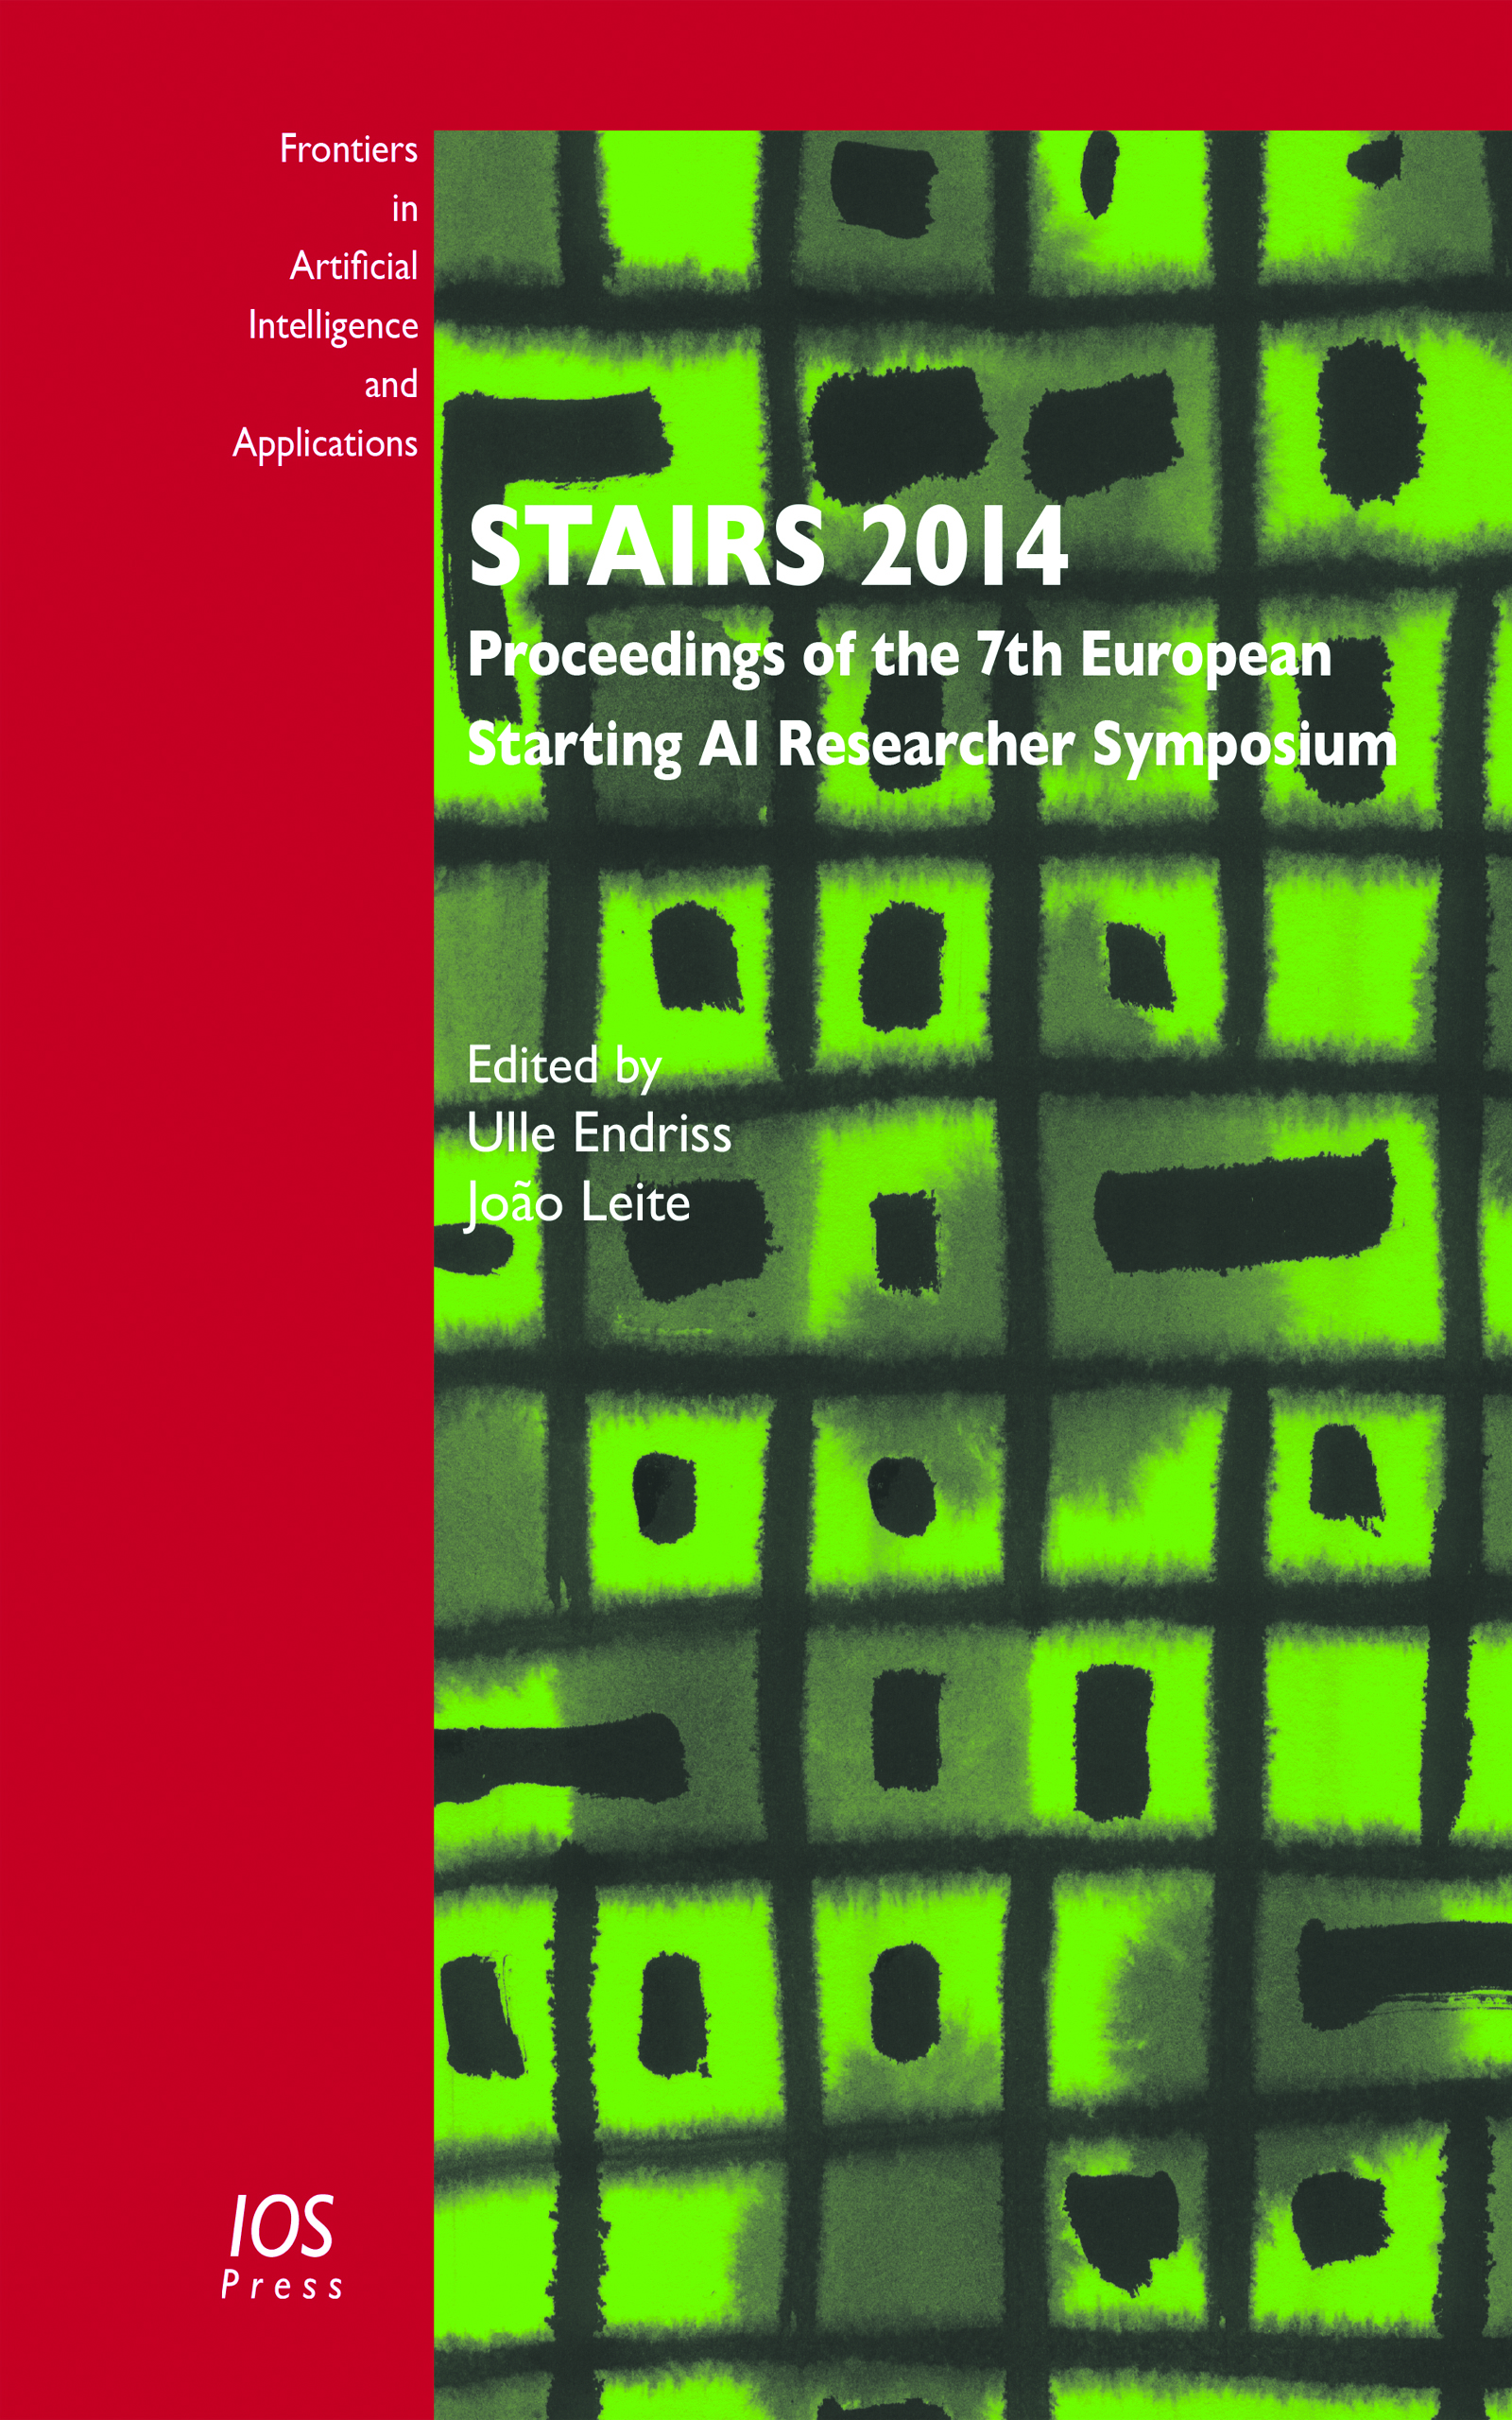 Stairs 2014 V5.indd